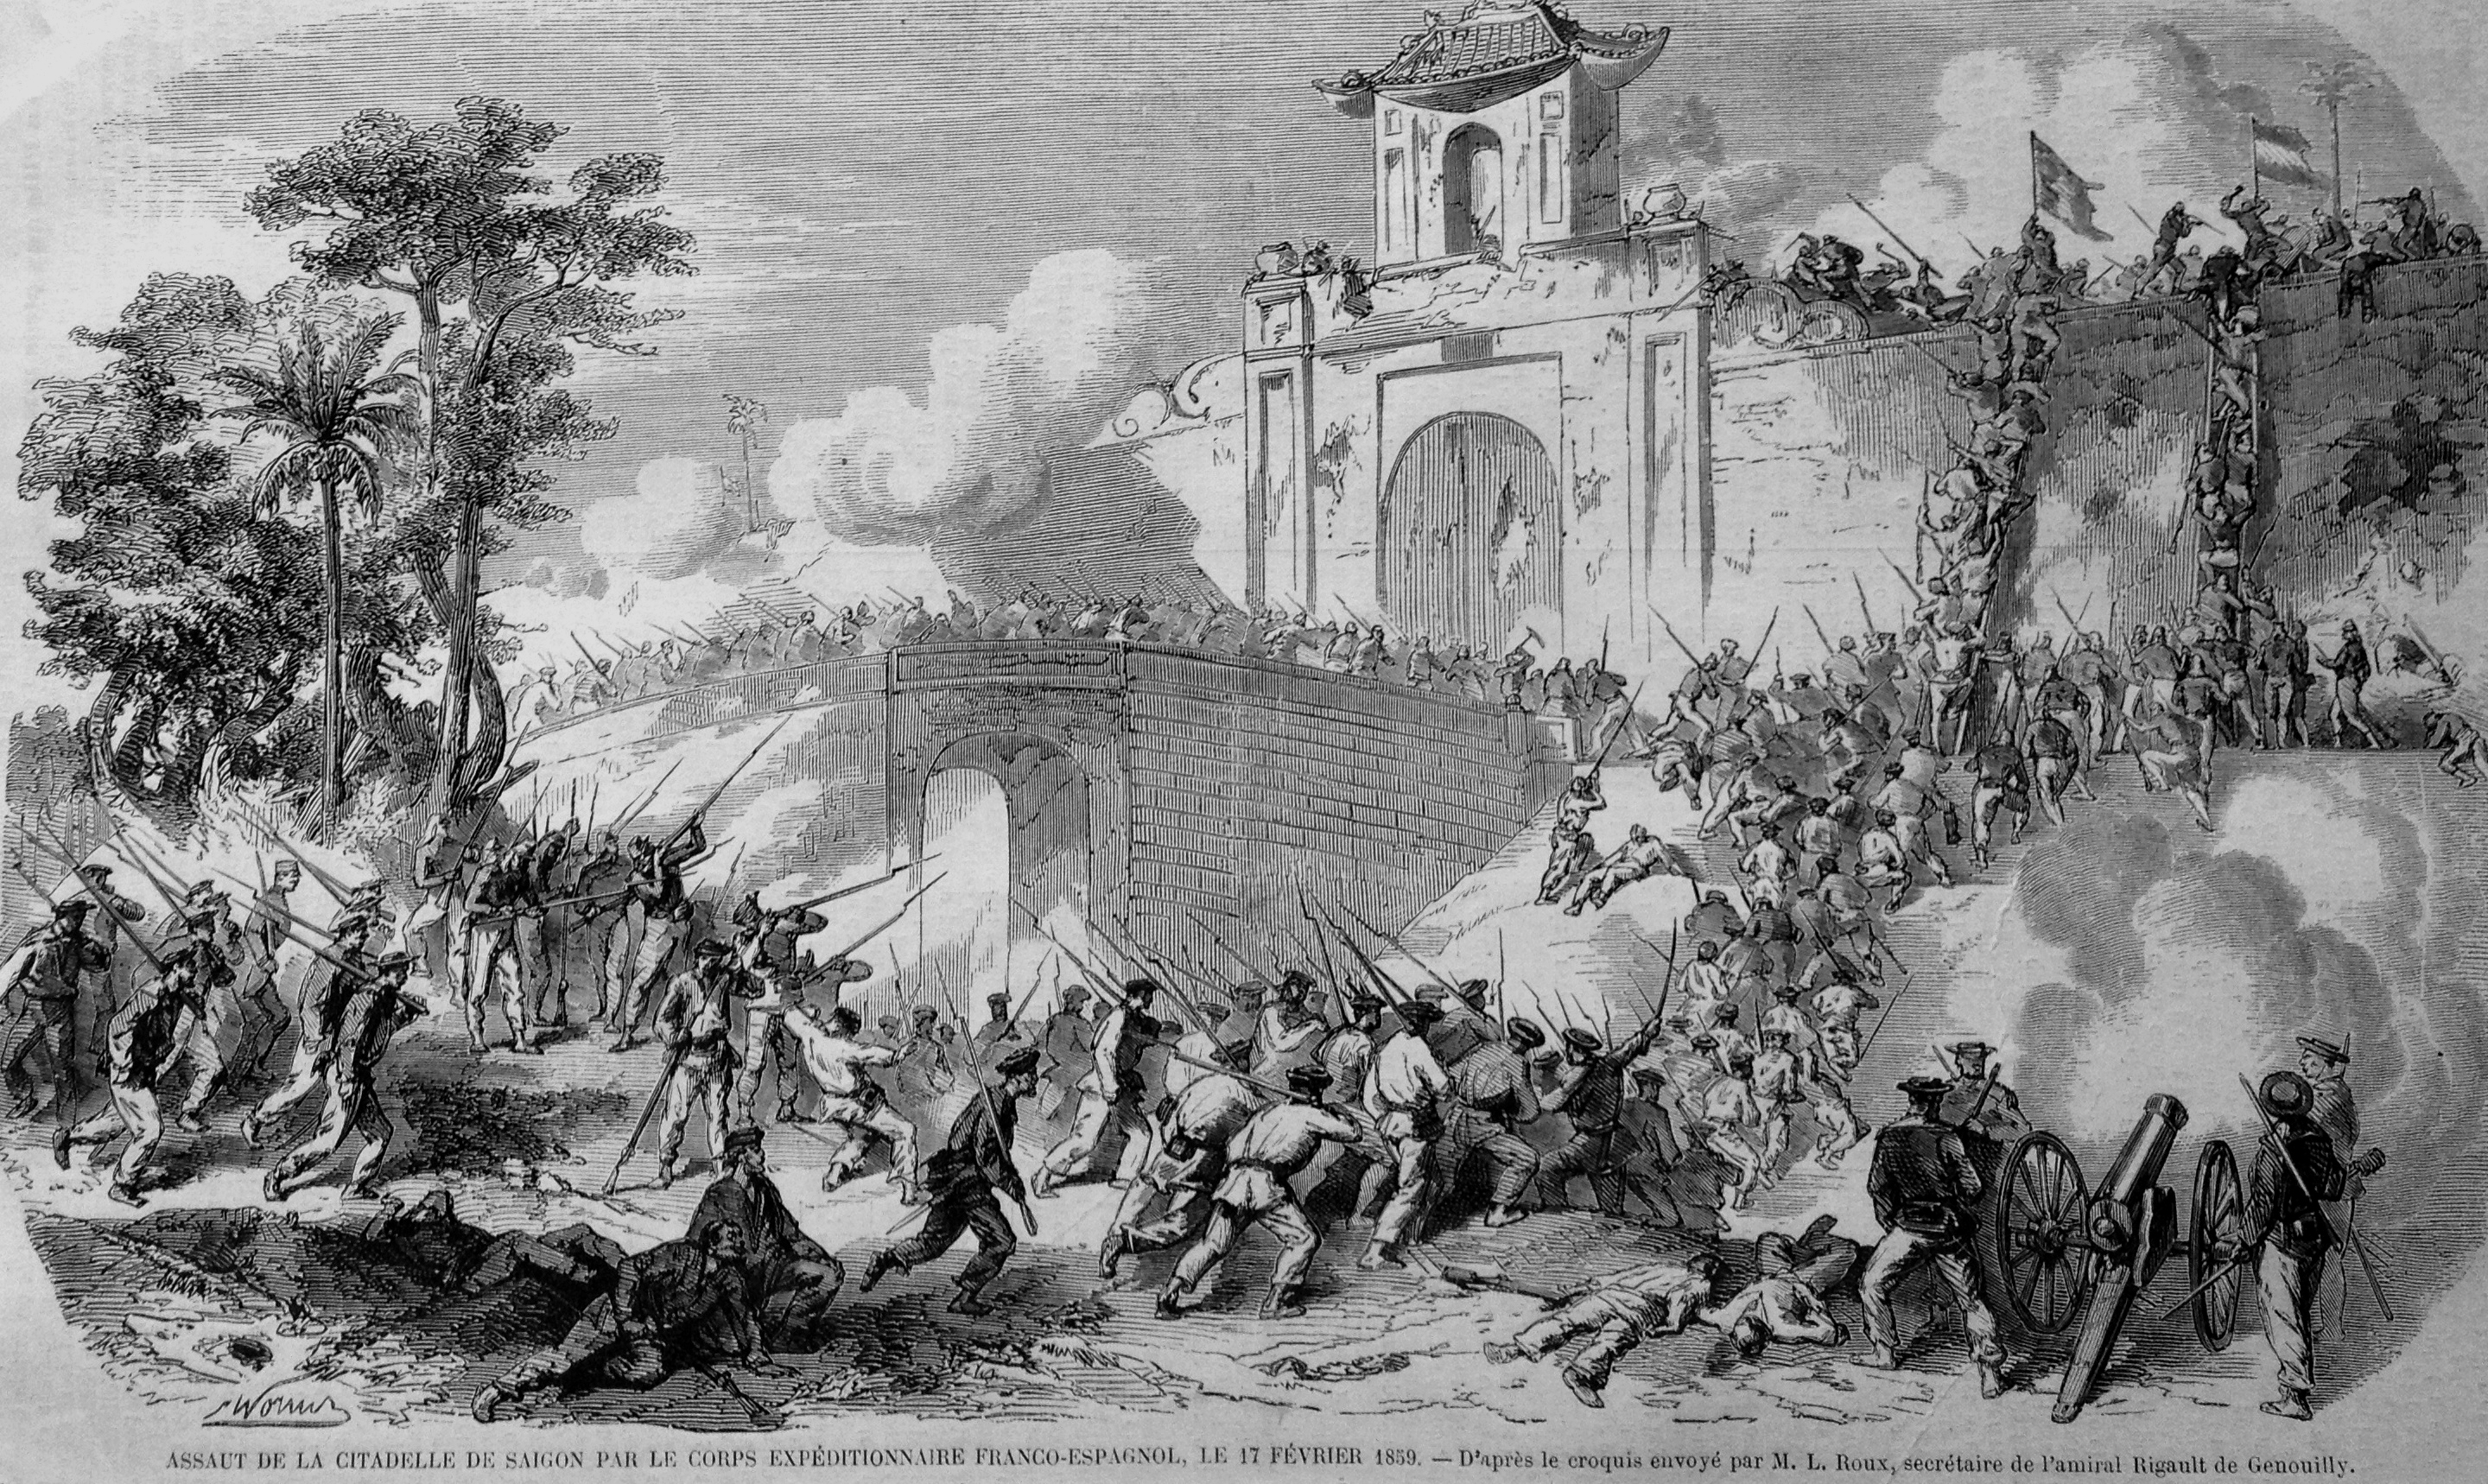 File:French capture of Saigon in 1859.jpg